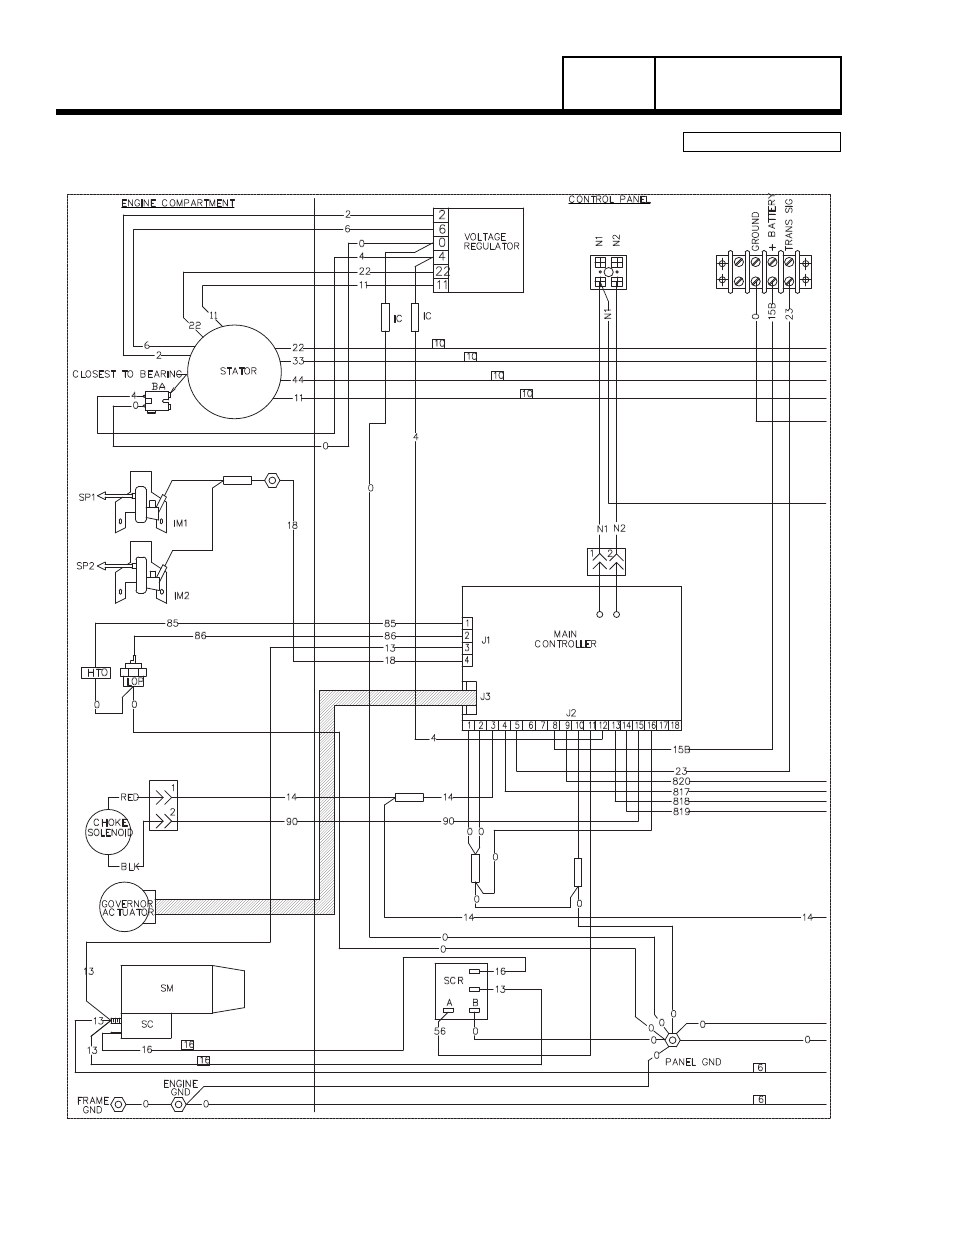 8 Kw Generac Wiring Diagram Trusted Schematics Diagrams Household 120v Detailed Schematic 17 Home Standby Group G Part 7 Power Rh Manualsdir Com Manuals 20kw